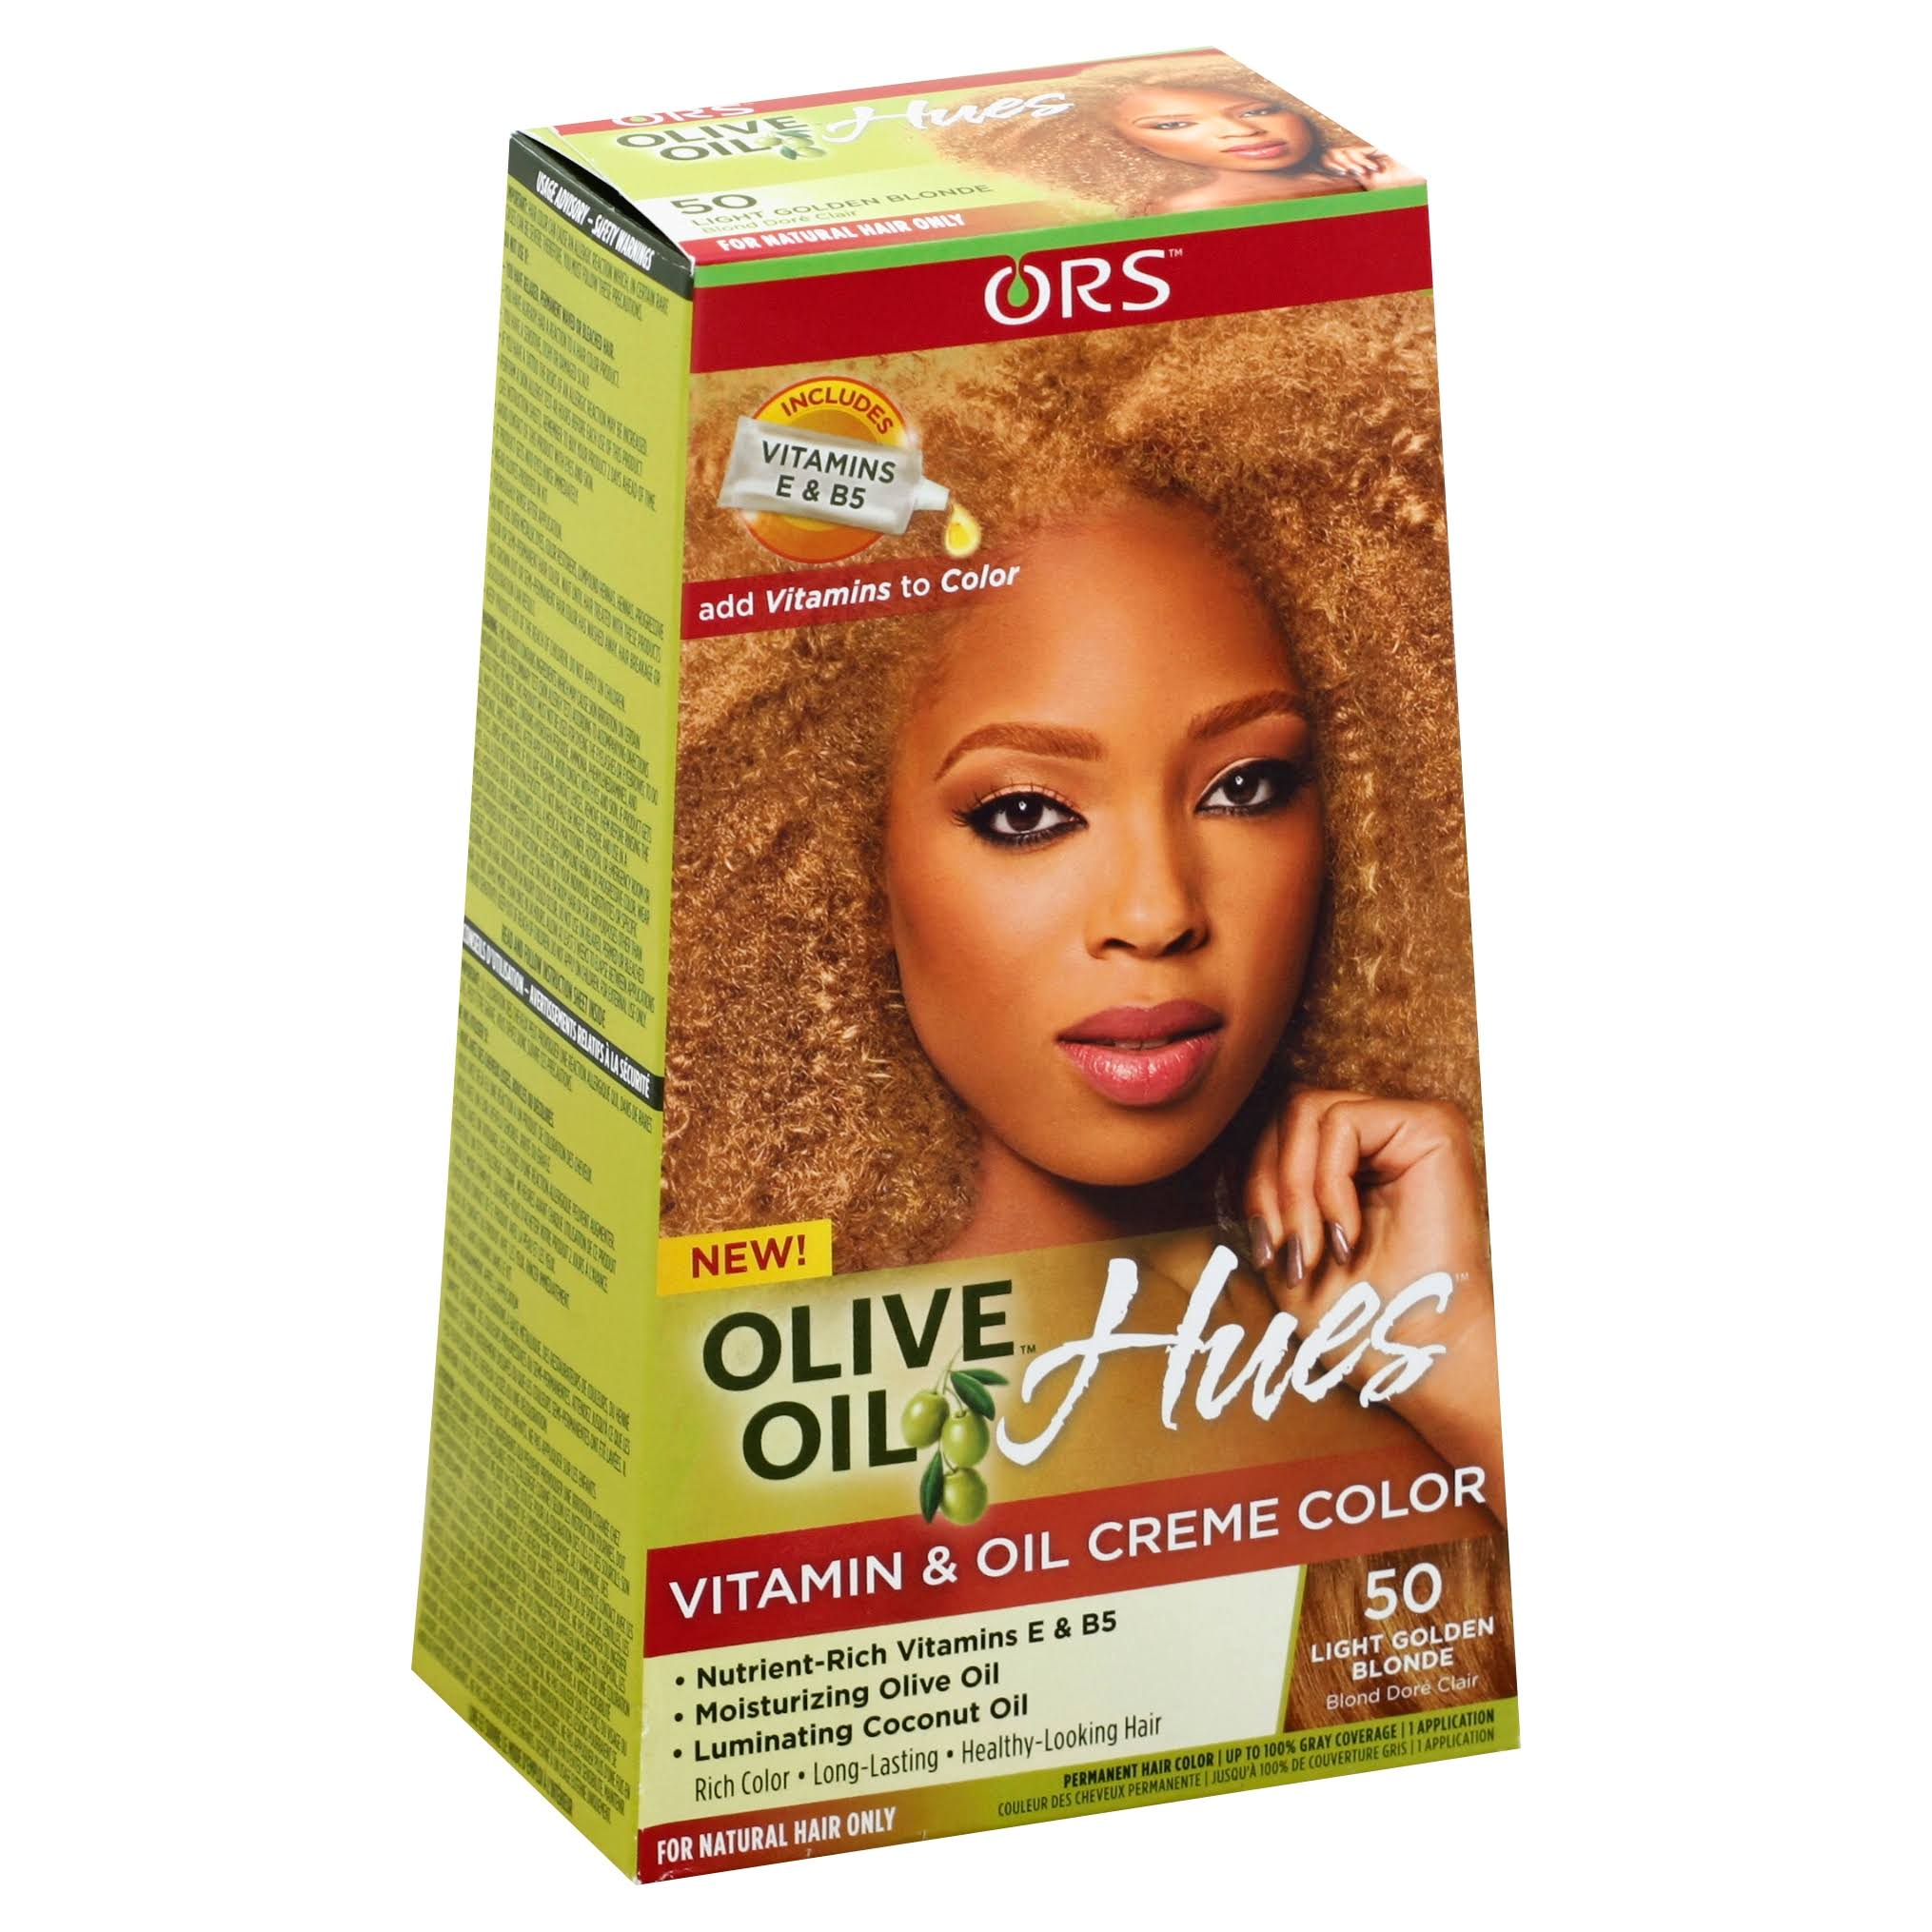 Ors Olive Oil Hues Vitamin and Oil Creme Color - 50 Light Golden Blonde